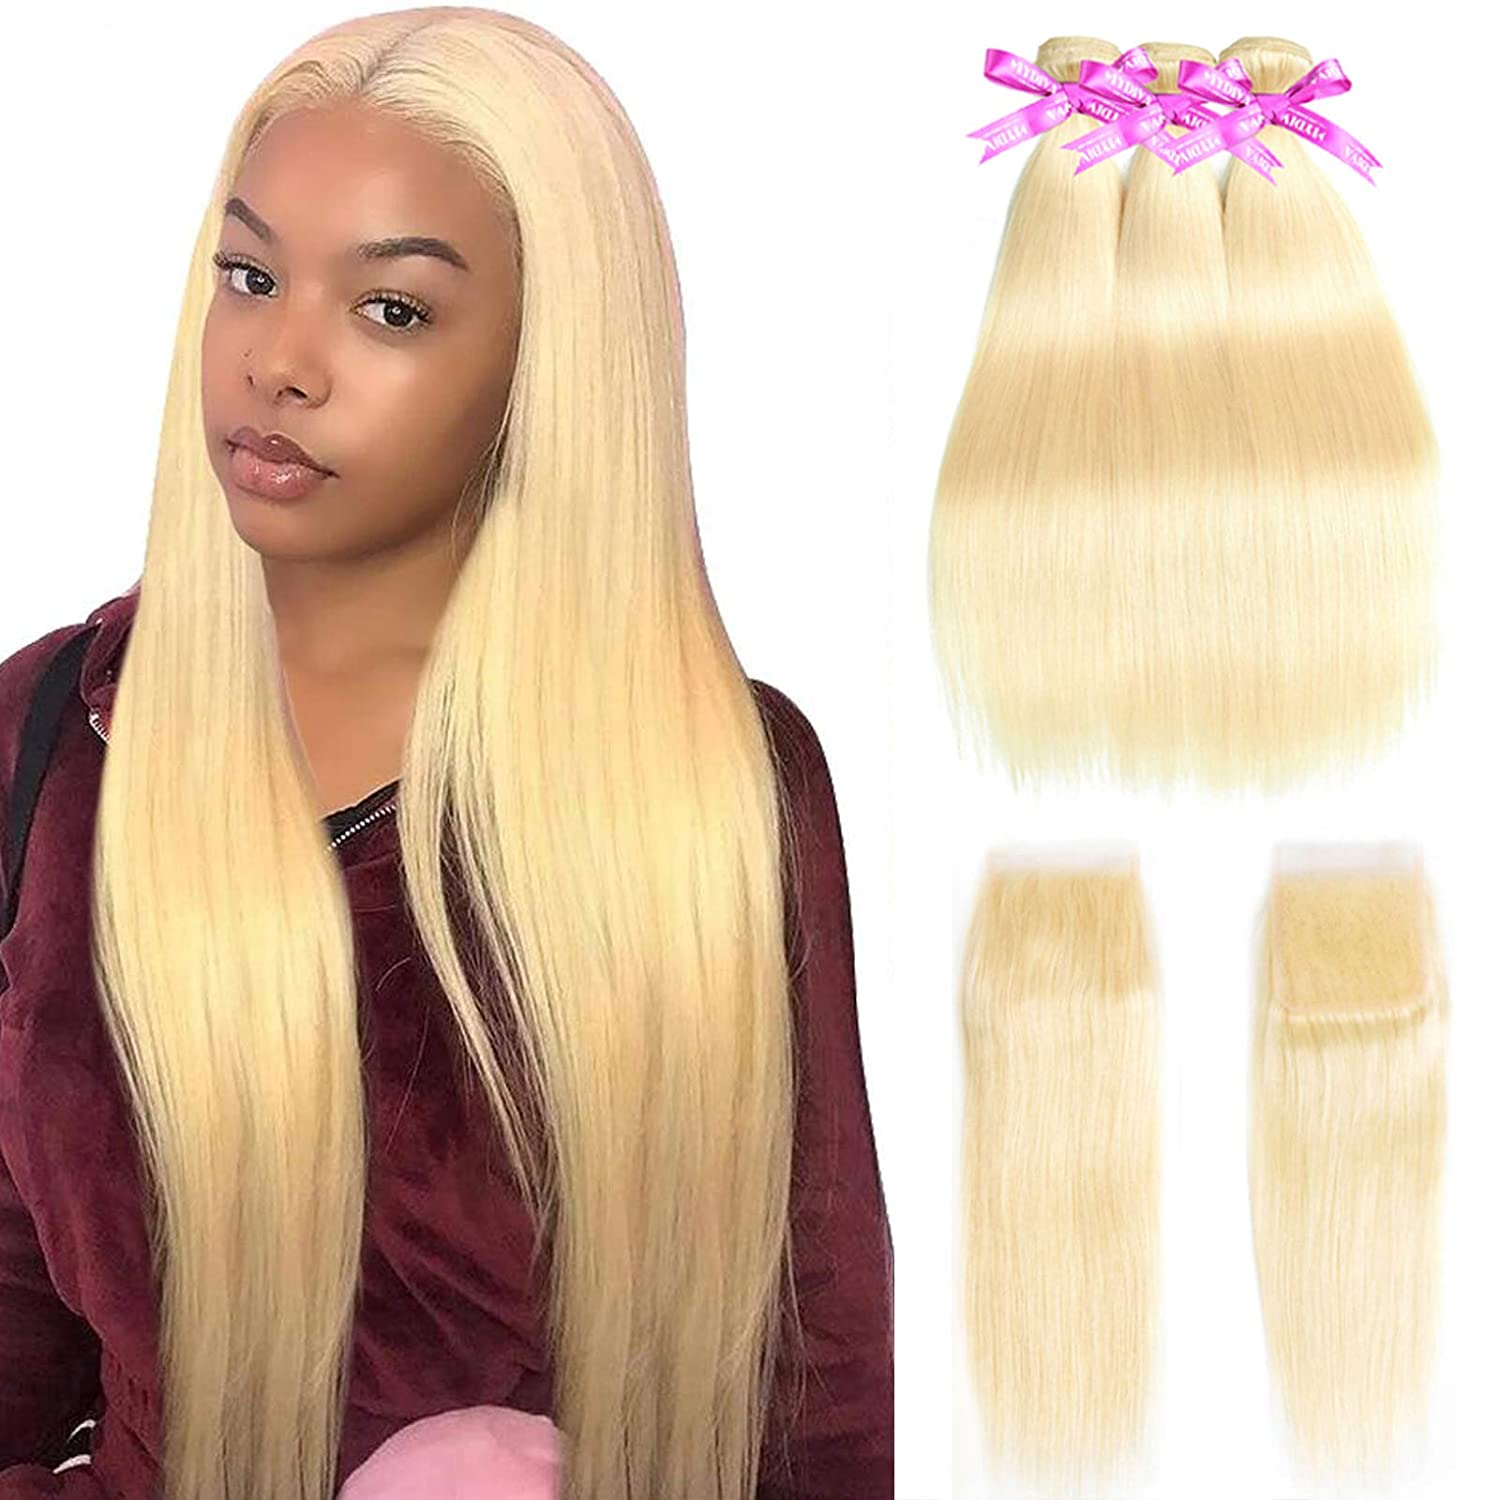 MYDIVA Sale Limited Special Price item 613 Bundles with Frontal Human Hair 3 Braz Blonde